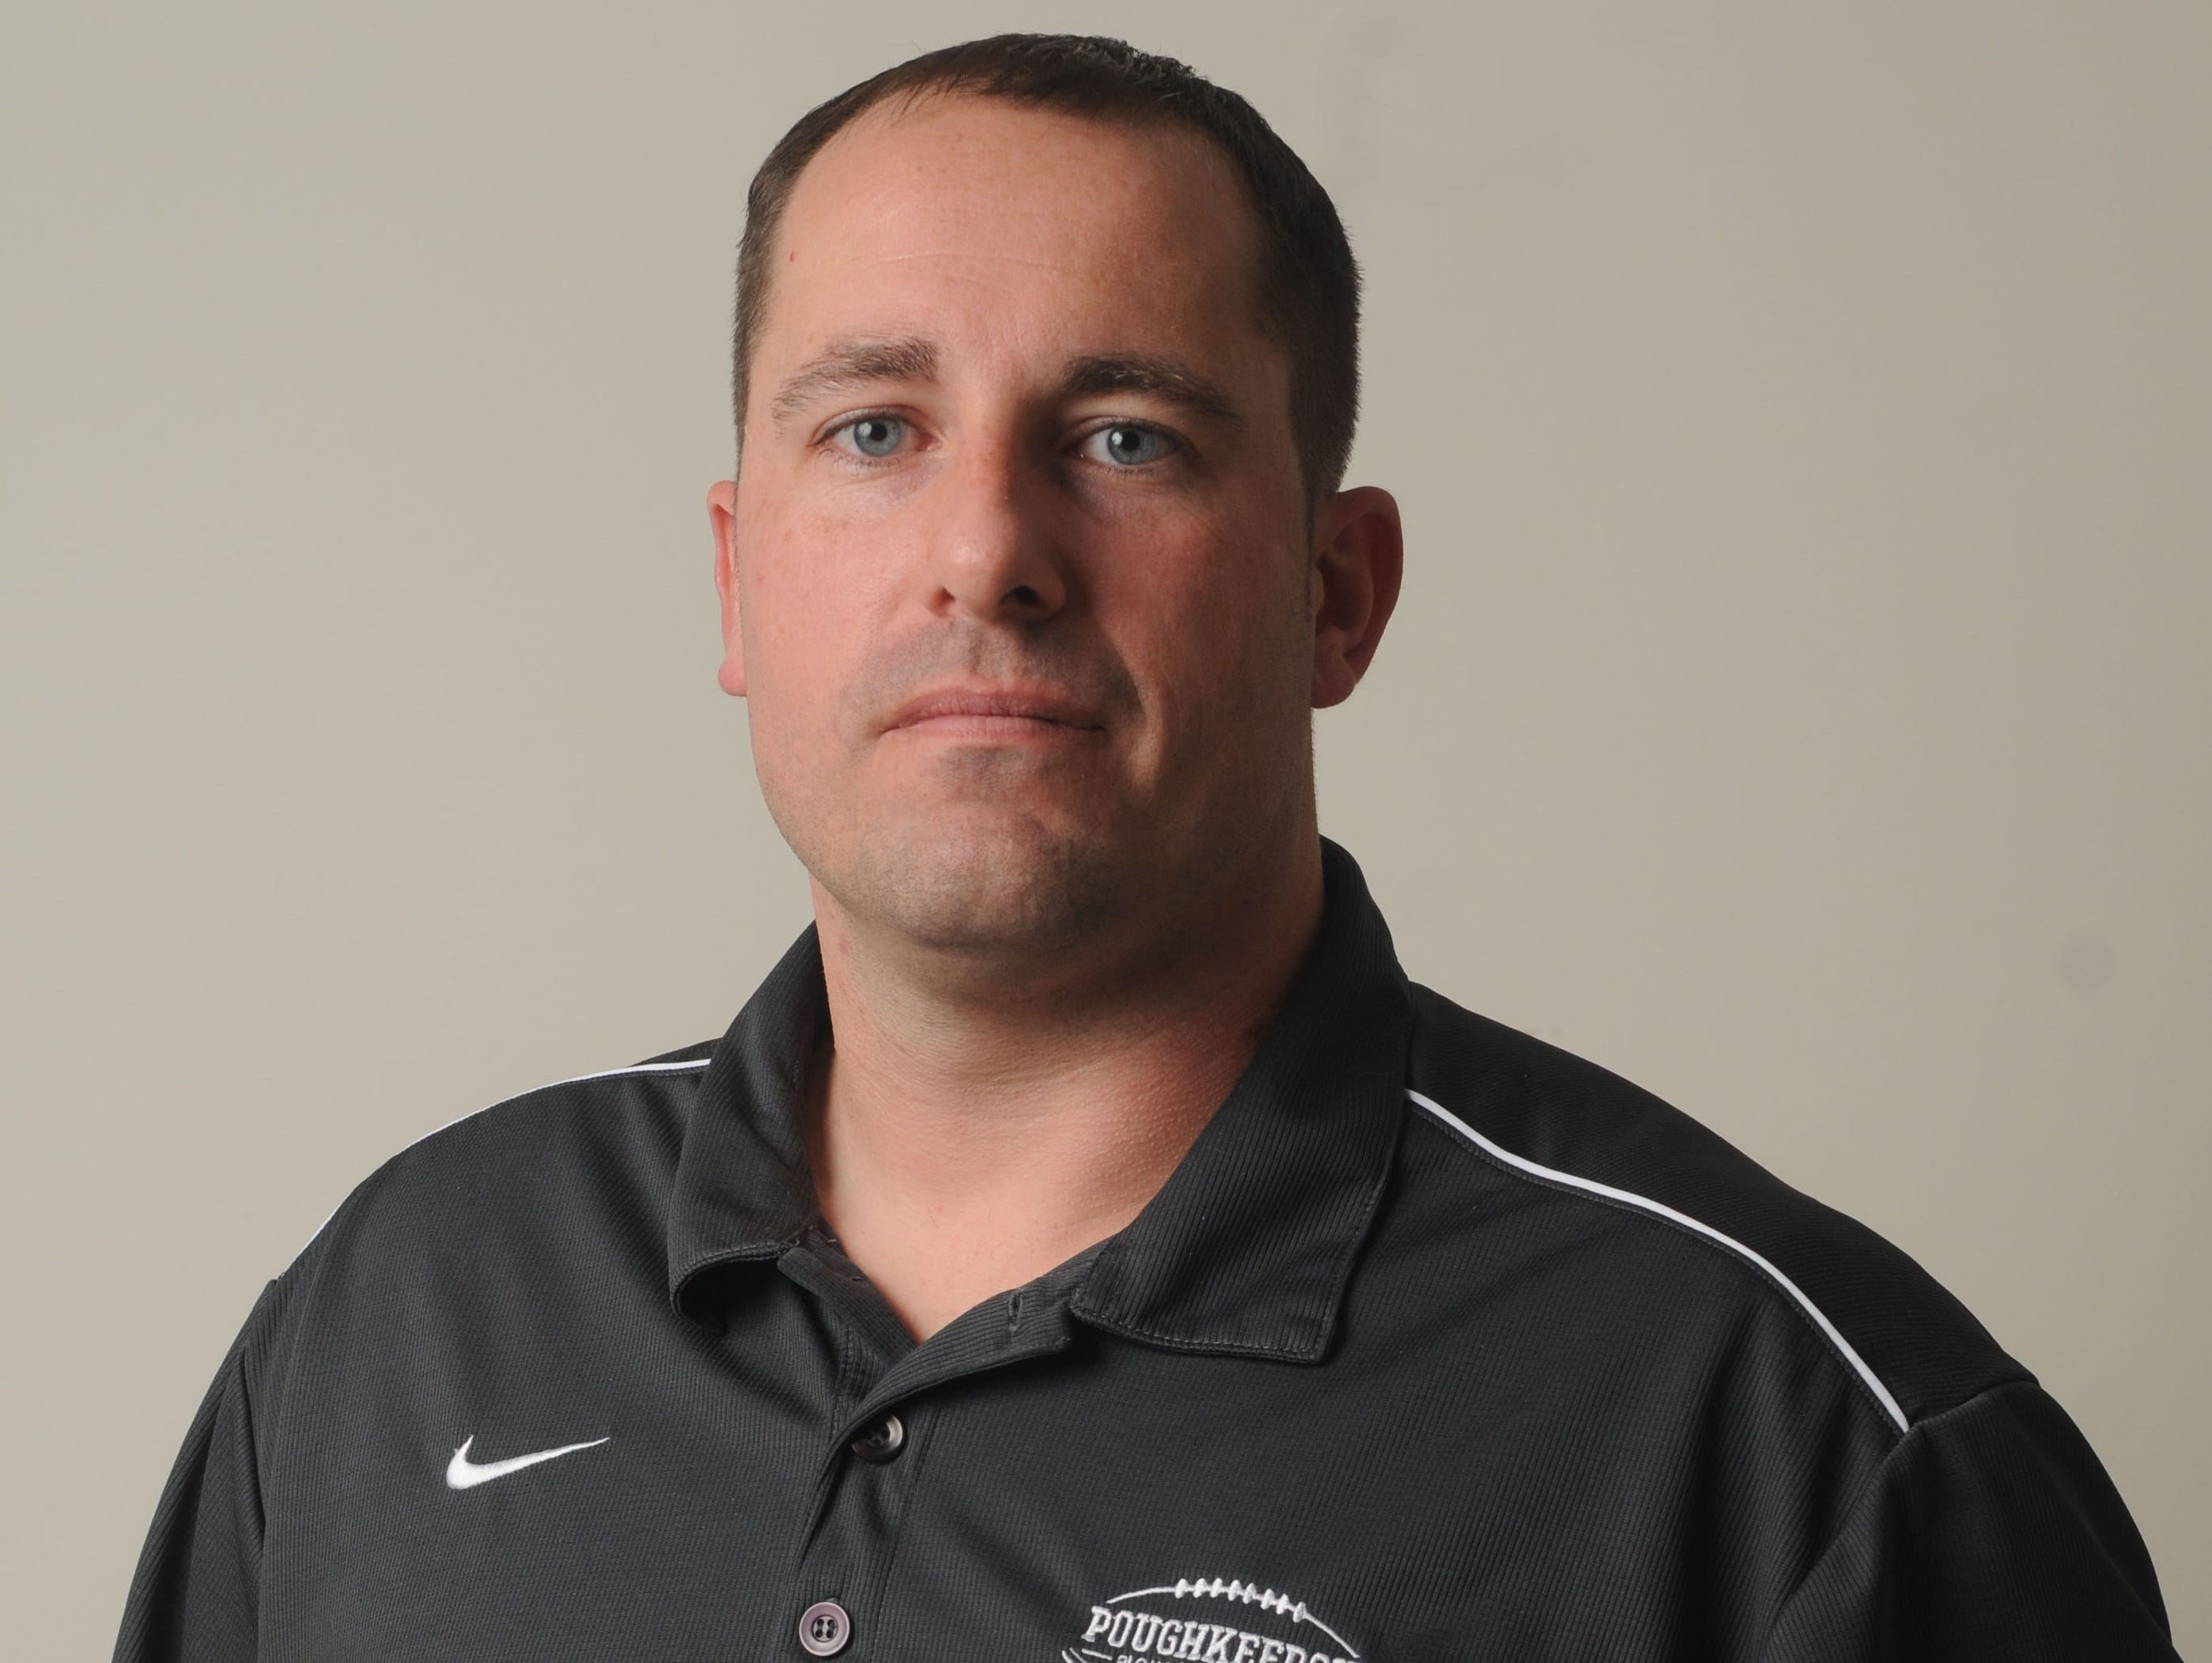 Ken Barger was removed as Poughkeepsie High School's head football coach after the 2012 season.